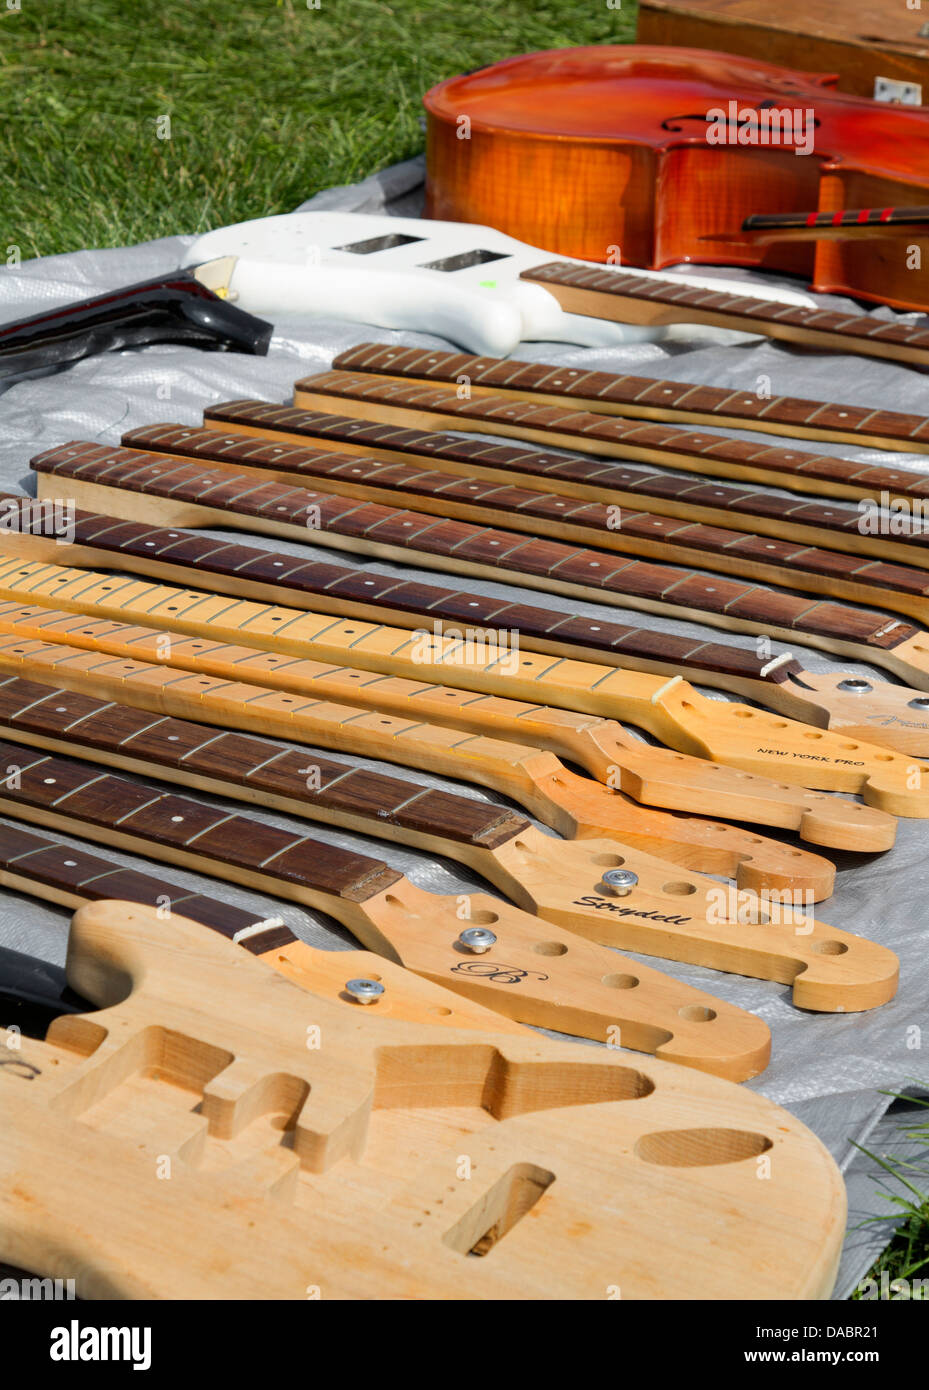 Guitar necks at a flea market - Stock Image